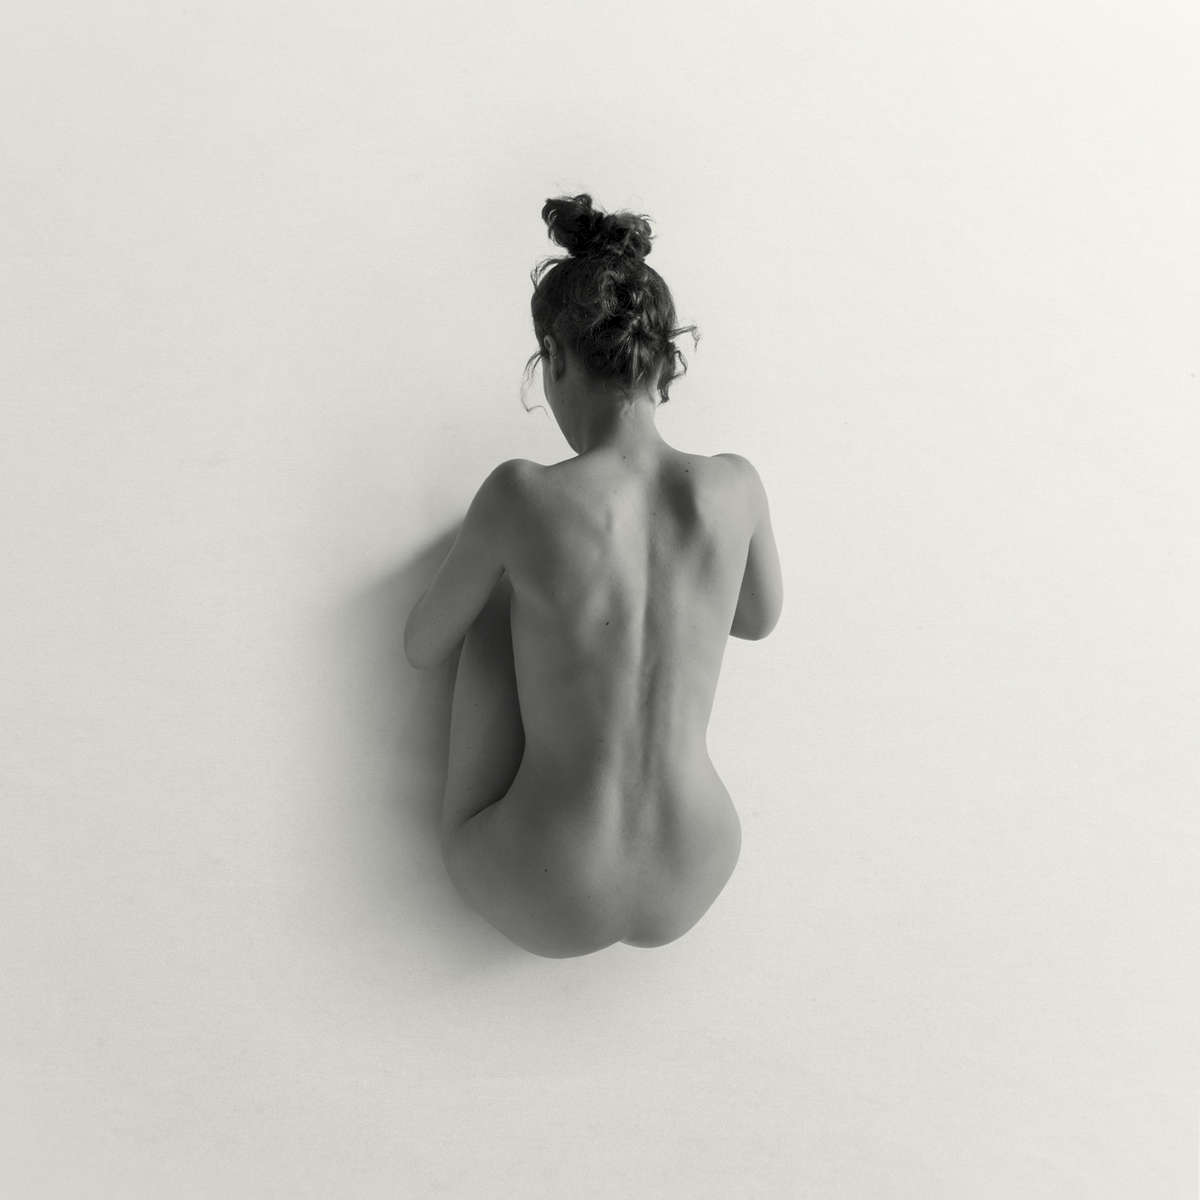 crouching nude woman on white in a studio